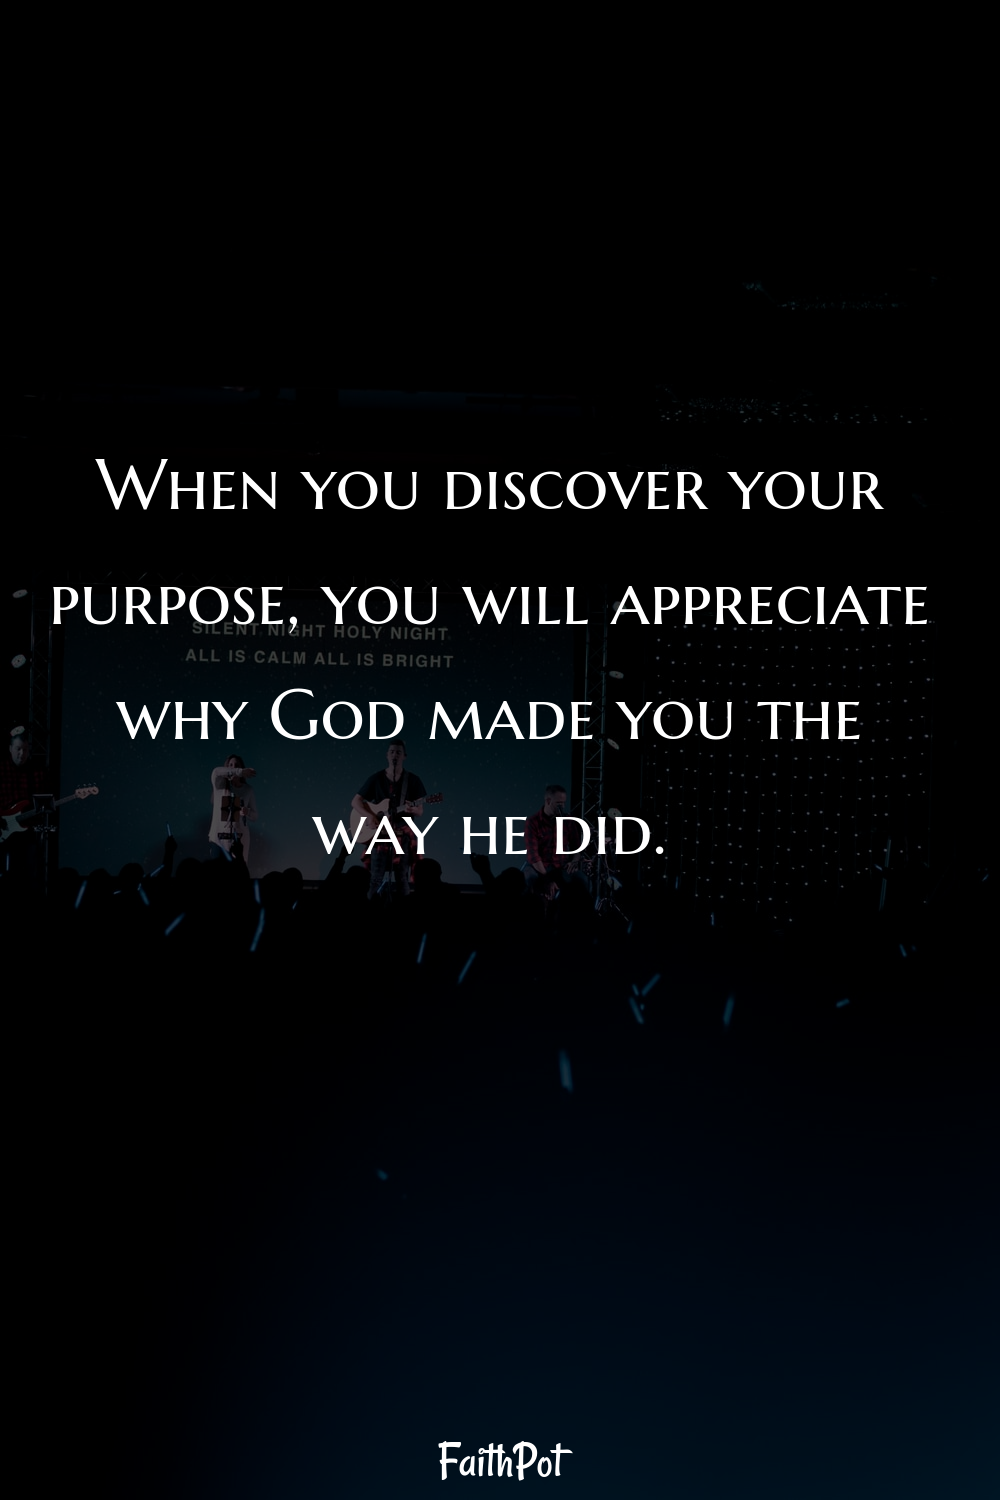 When you discover your purpose...